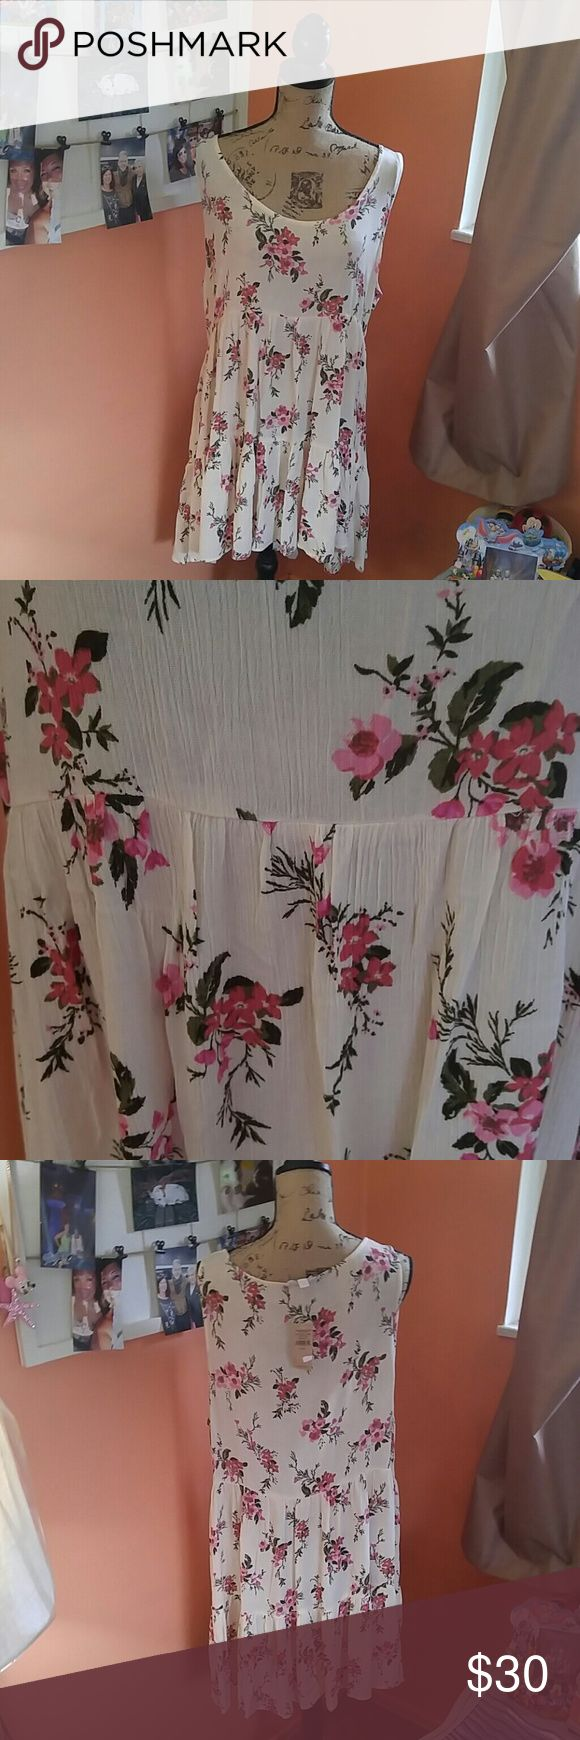 American Eagle boho style dress This American Eagle size XL boho style dress is absolutely gorgeous. It has pink floral design and off white cream color background ruffled bottom will need to wear a cami or a tank top underneath it. This is new with tags it has never been worn so ready for that summer vacation or a night out on the town.. Up with some beautiful boho sandals and you're all set to go be considerate when making offers and I do not trade American Eagle Outfitters Dresses